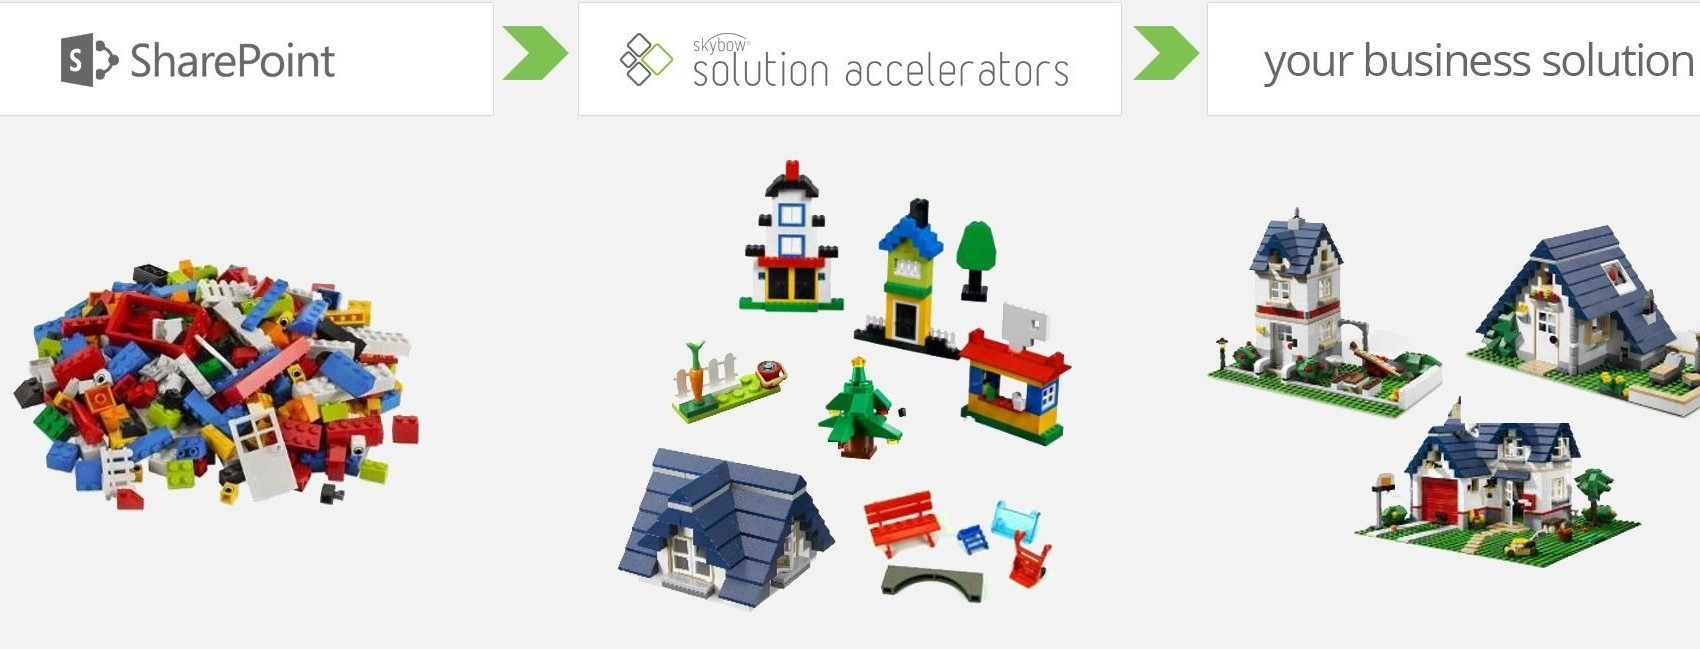 skybow-solution-accelerators-en_thumb.jpg